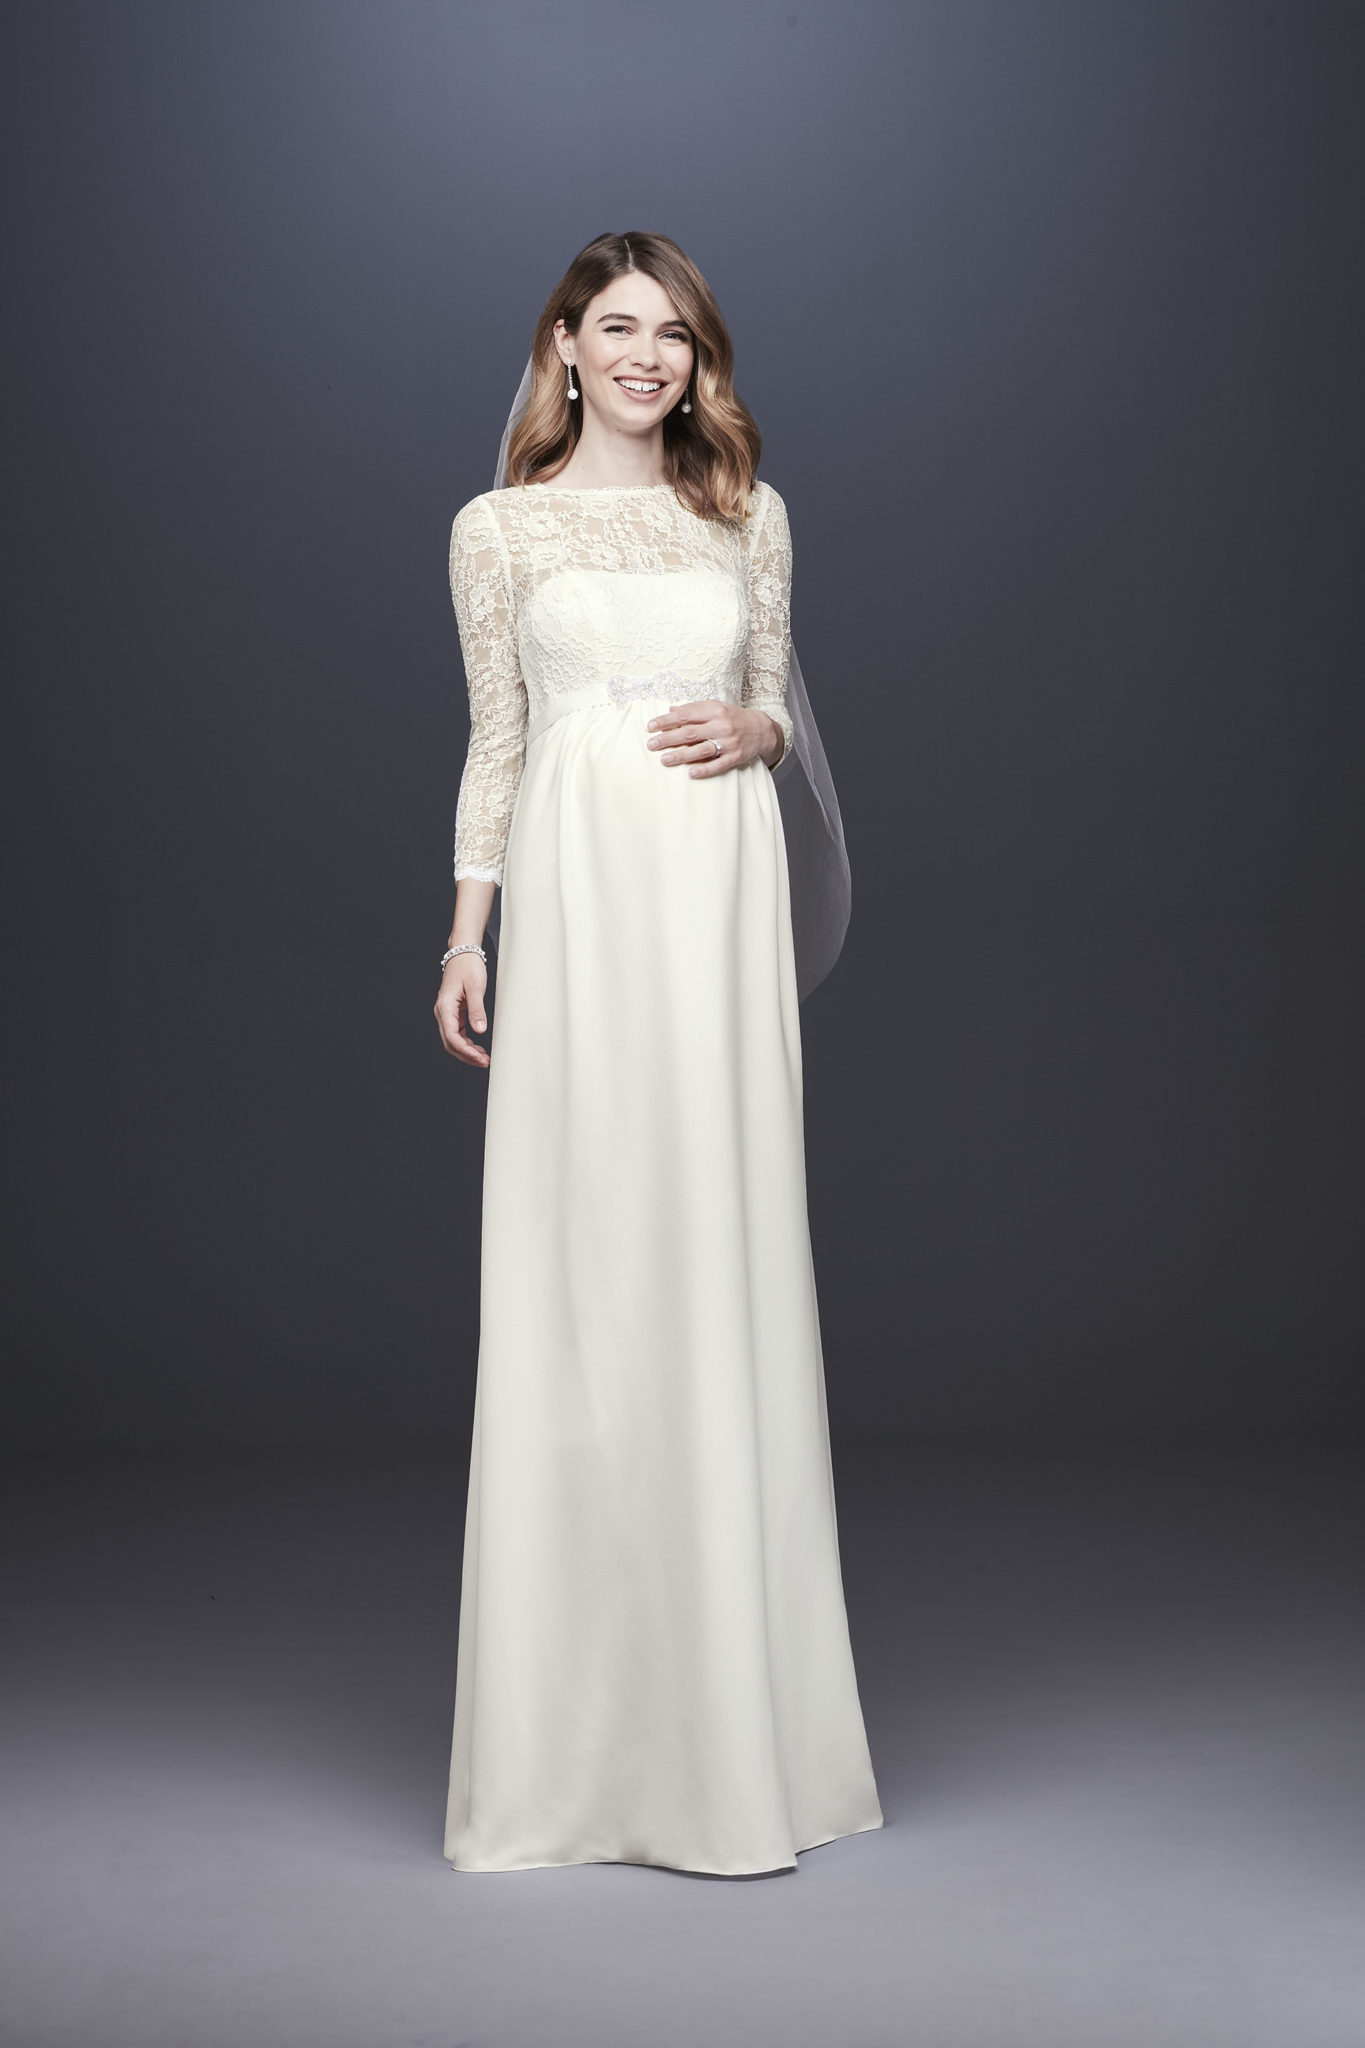 In The News: How to Shop for a Wedding Dress While Pregnant